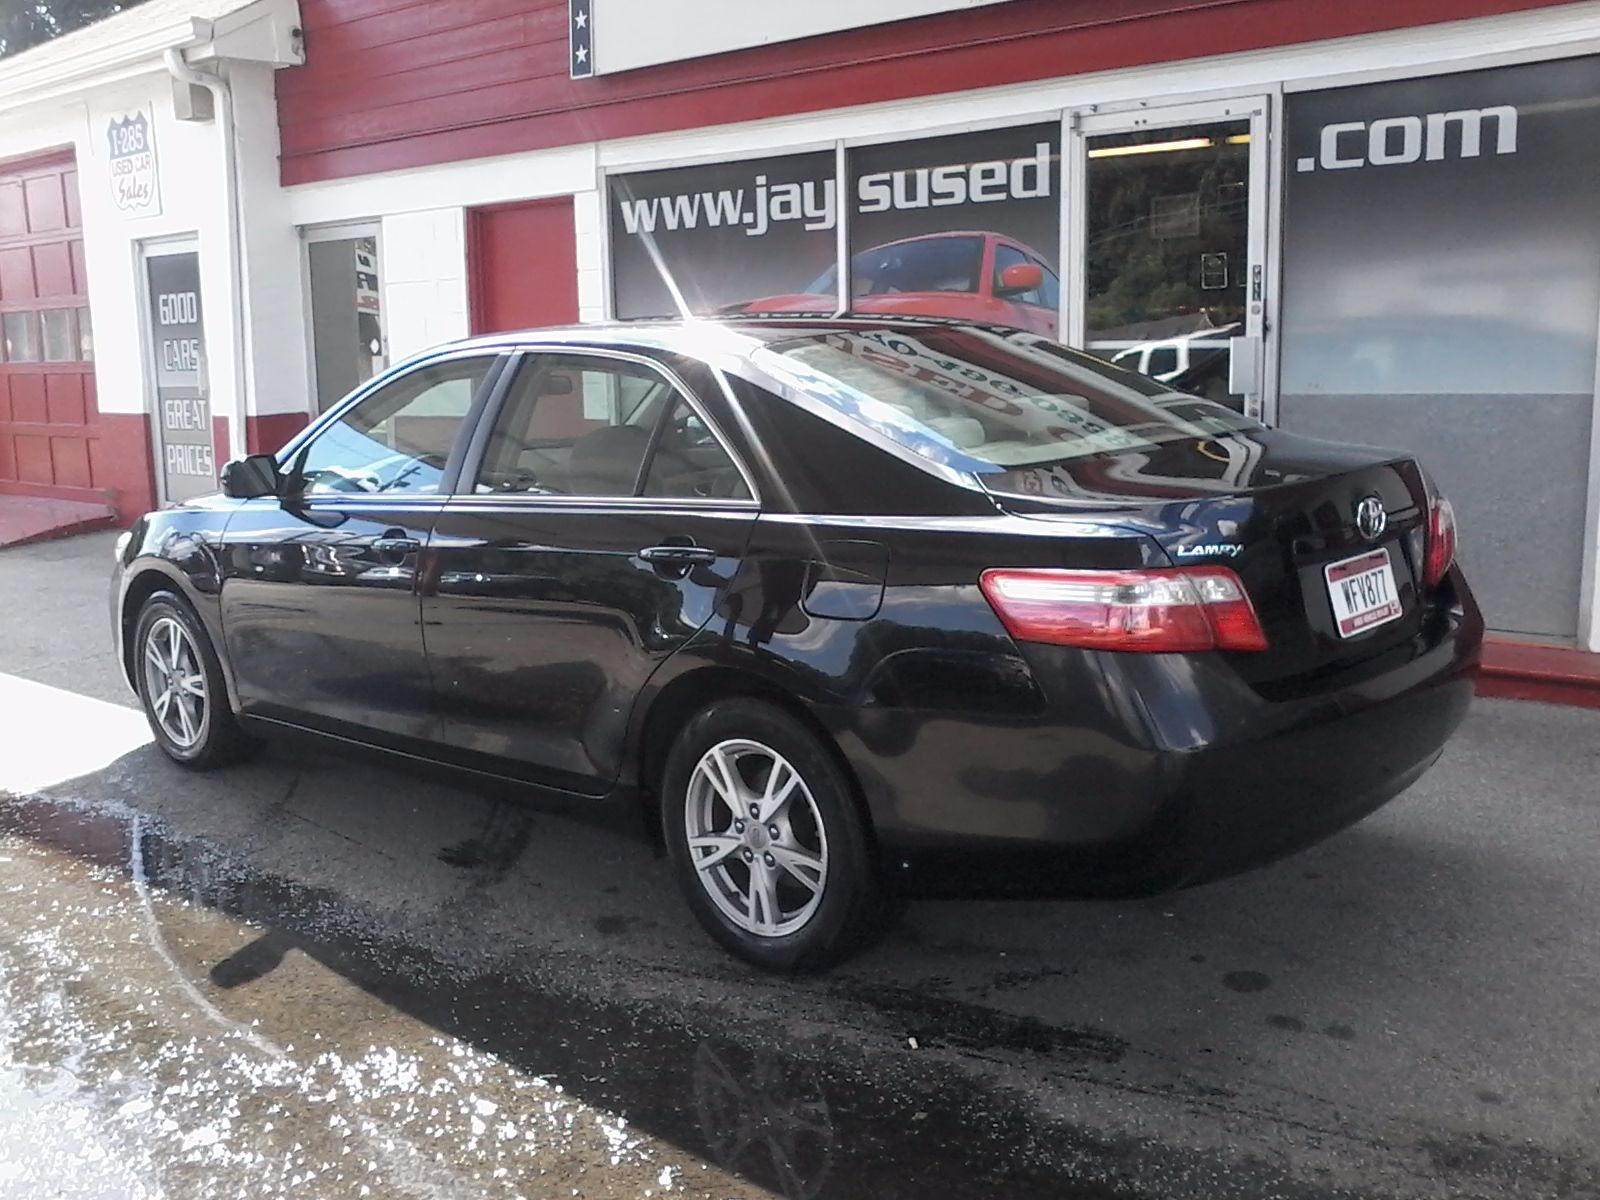 s of a Used 2009 Toyota Camry at Jay s Used Cars LLC